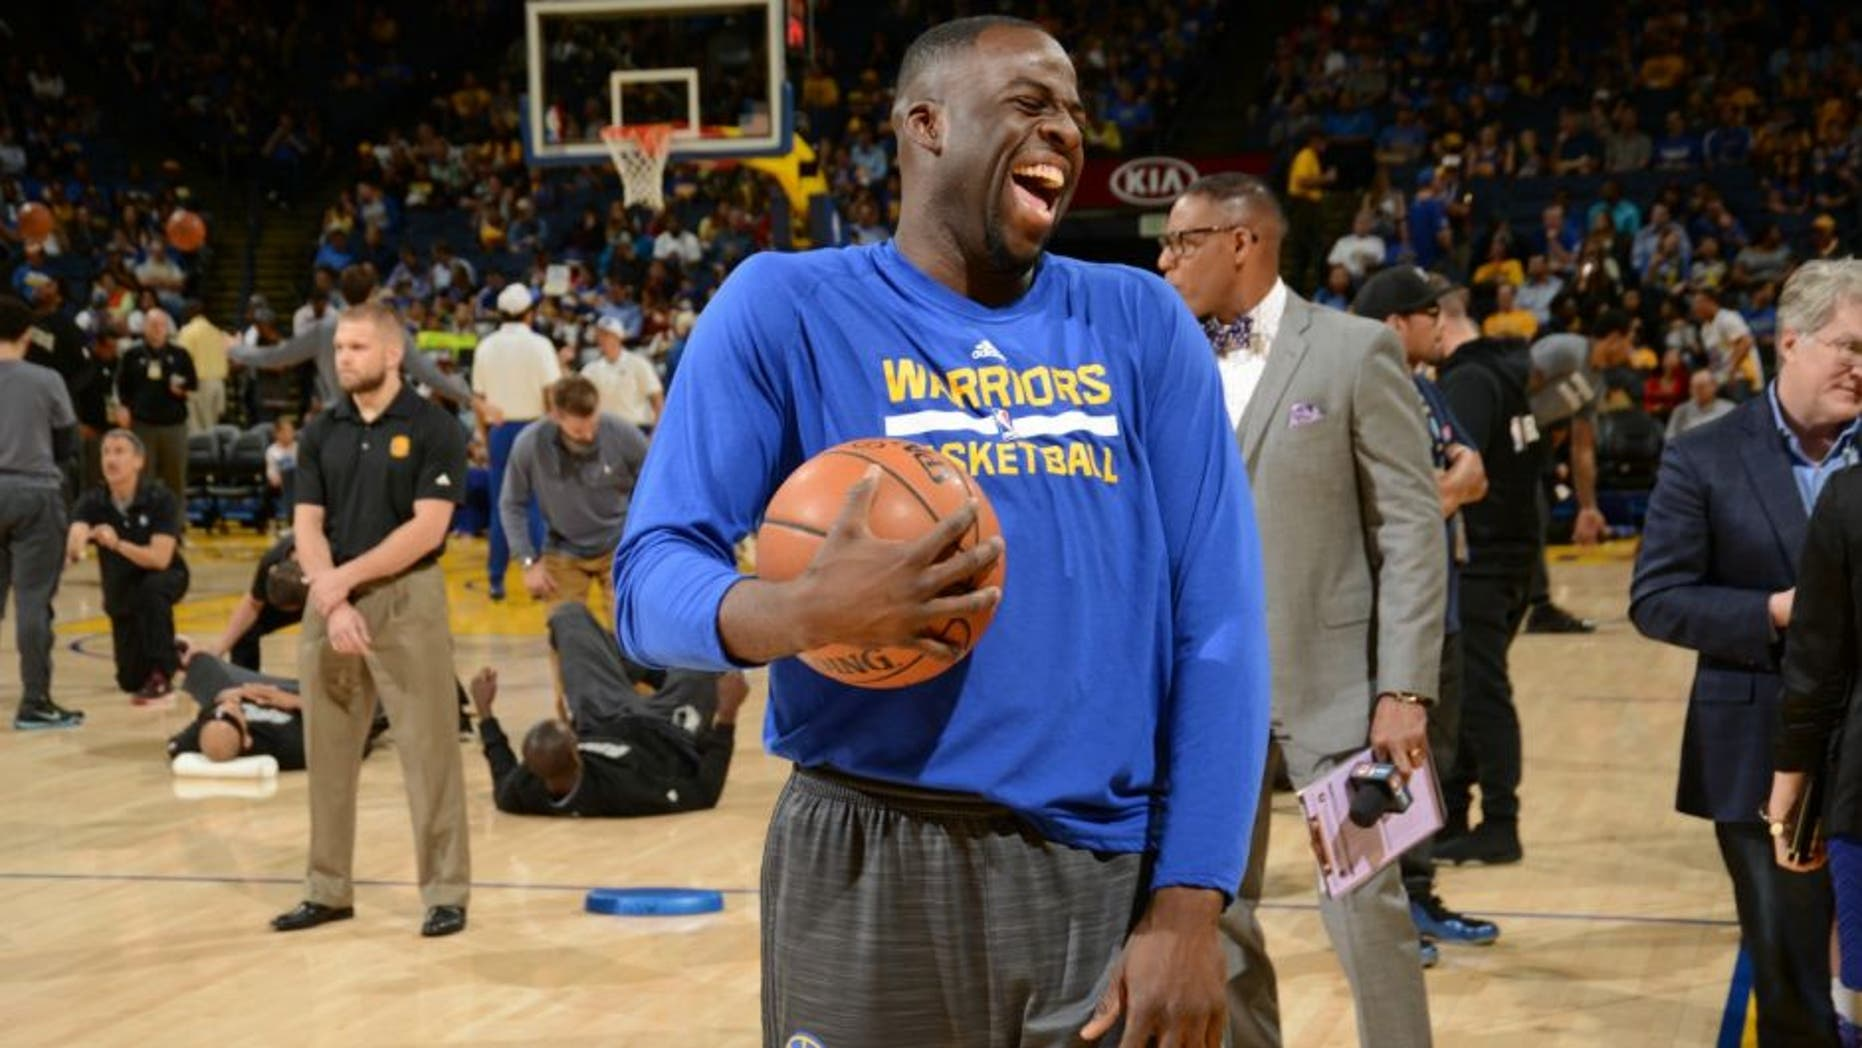 OAKLAND, CA - APRIL 5: Draymond Green #23 of the Golden State Warriors laughs facing the Minnesota Timberwolves on April 5, 2016 at Oracle Arena in Oakland, California. NOTE TO USER: User expressly acknowledges and agrees that, by downloading and or using this photograph, user is consenting to the terms and conditions of Getty Images License Agreement. Mandatory Copyright Notice: Copyright 2016 NBAE (Photo by Noah Graham/NBAE via Getty Images)